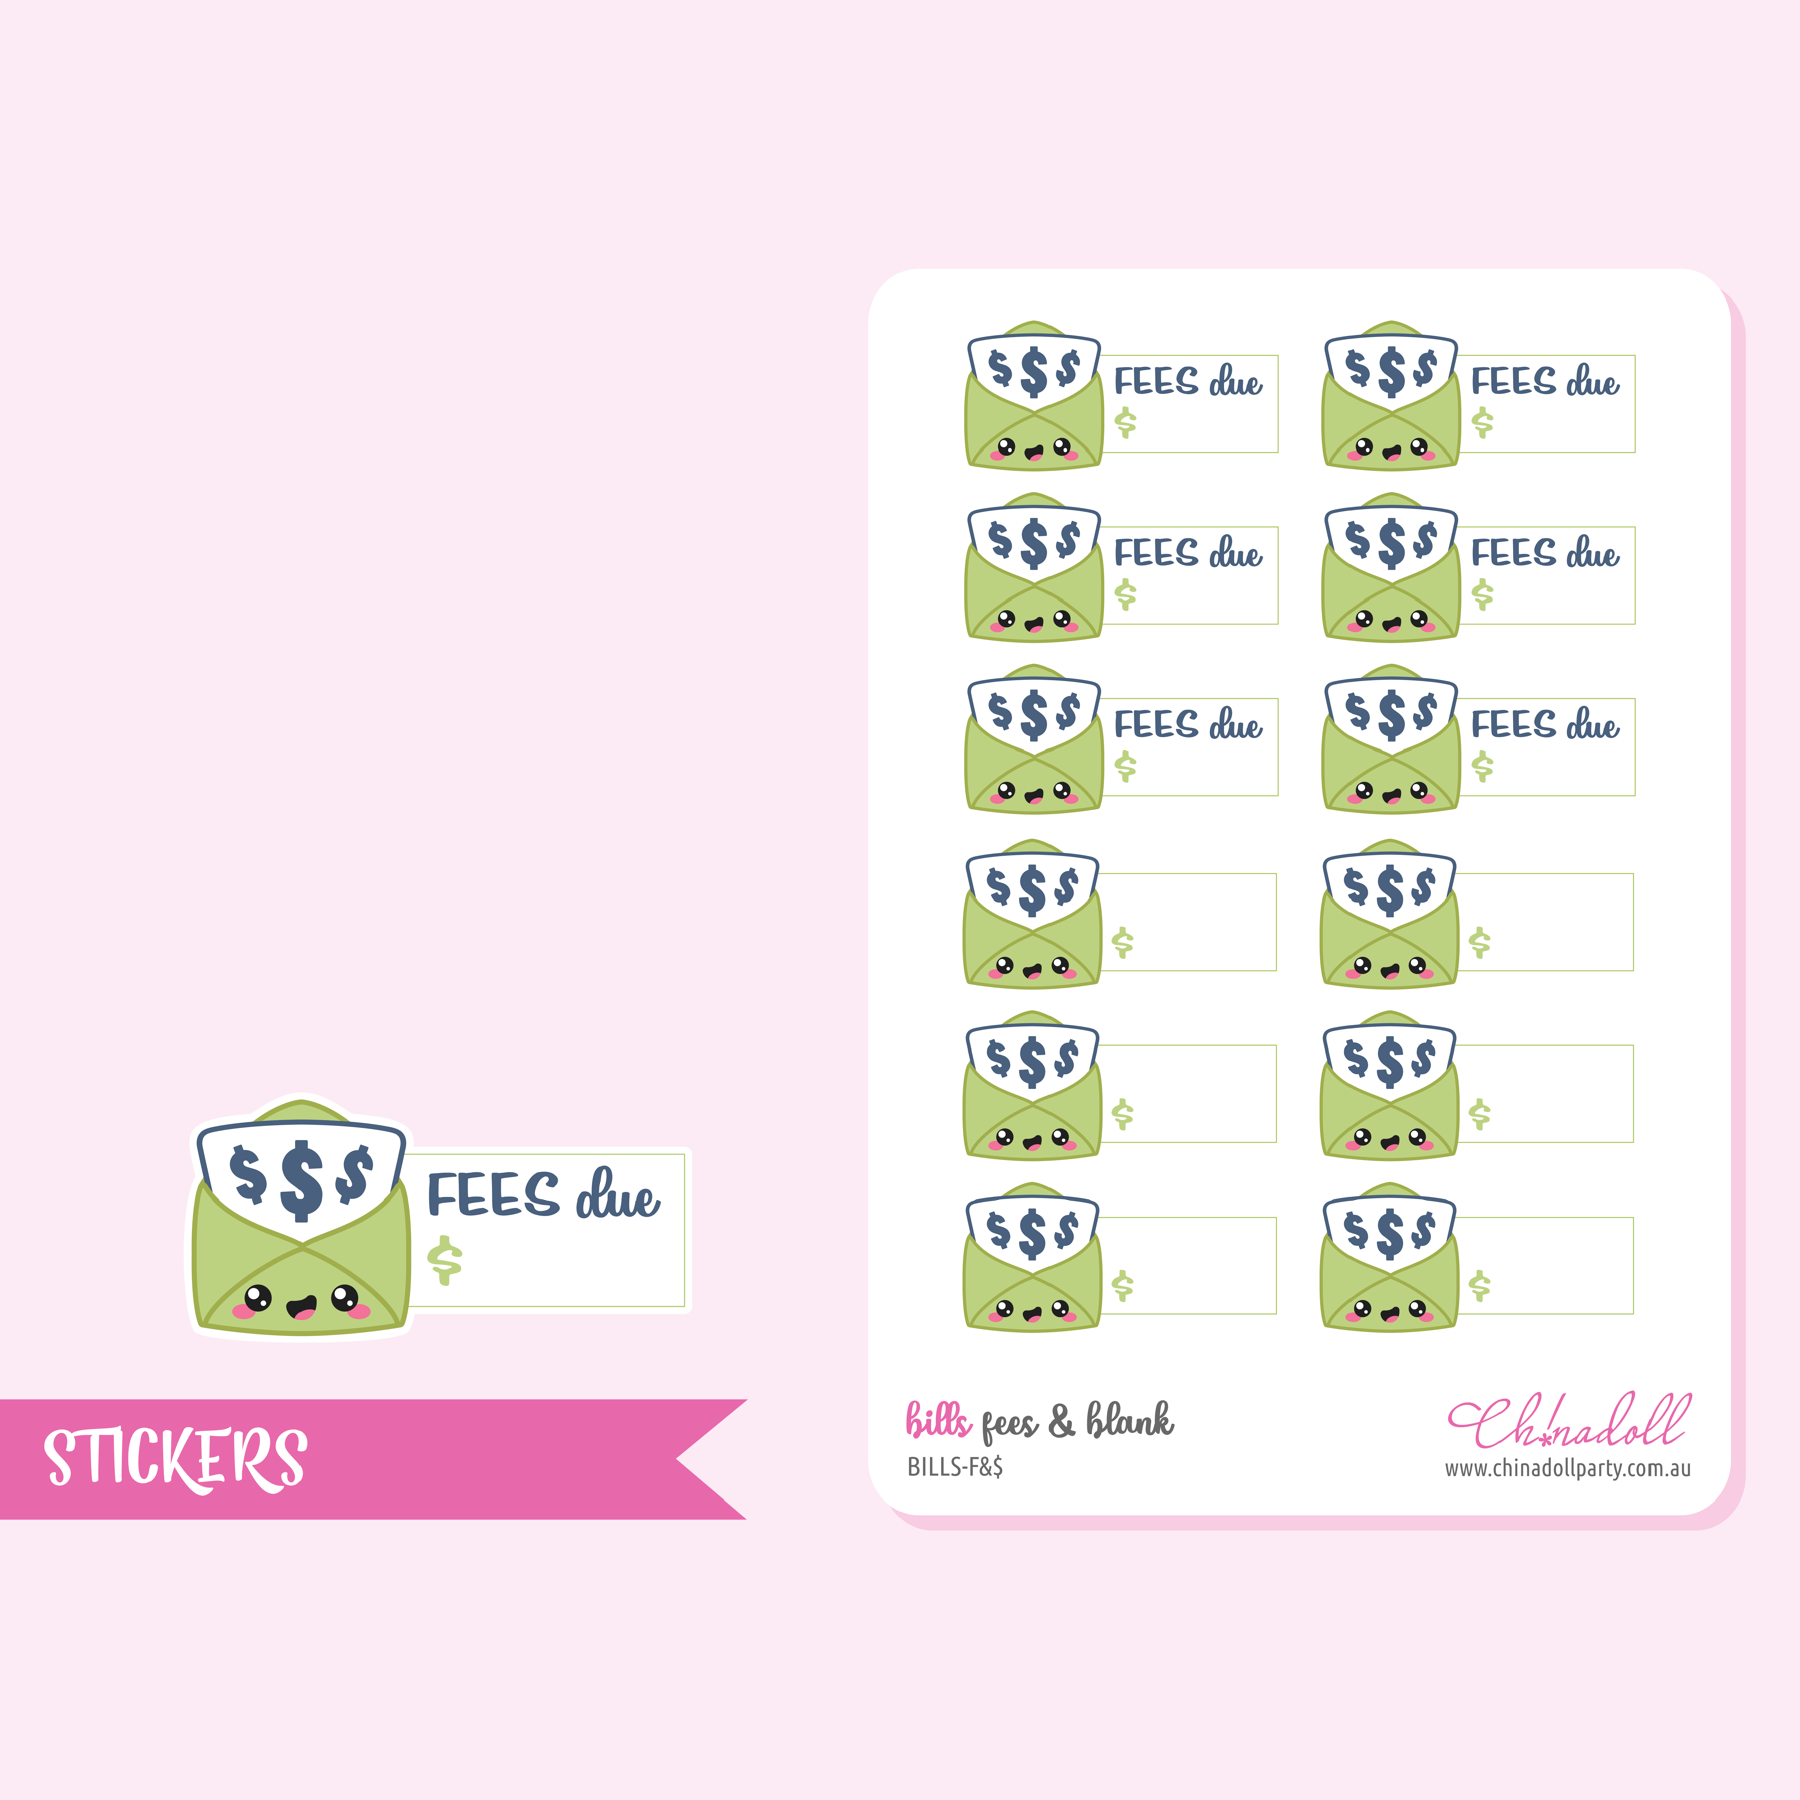 bills - fees and blank | sticker sheet | BILLS-F&$